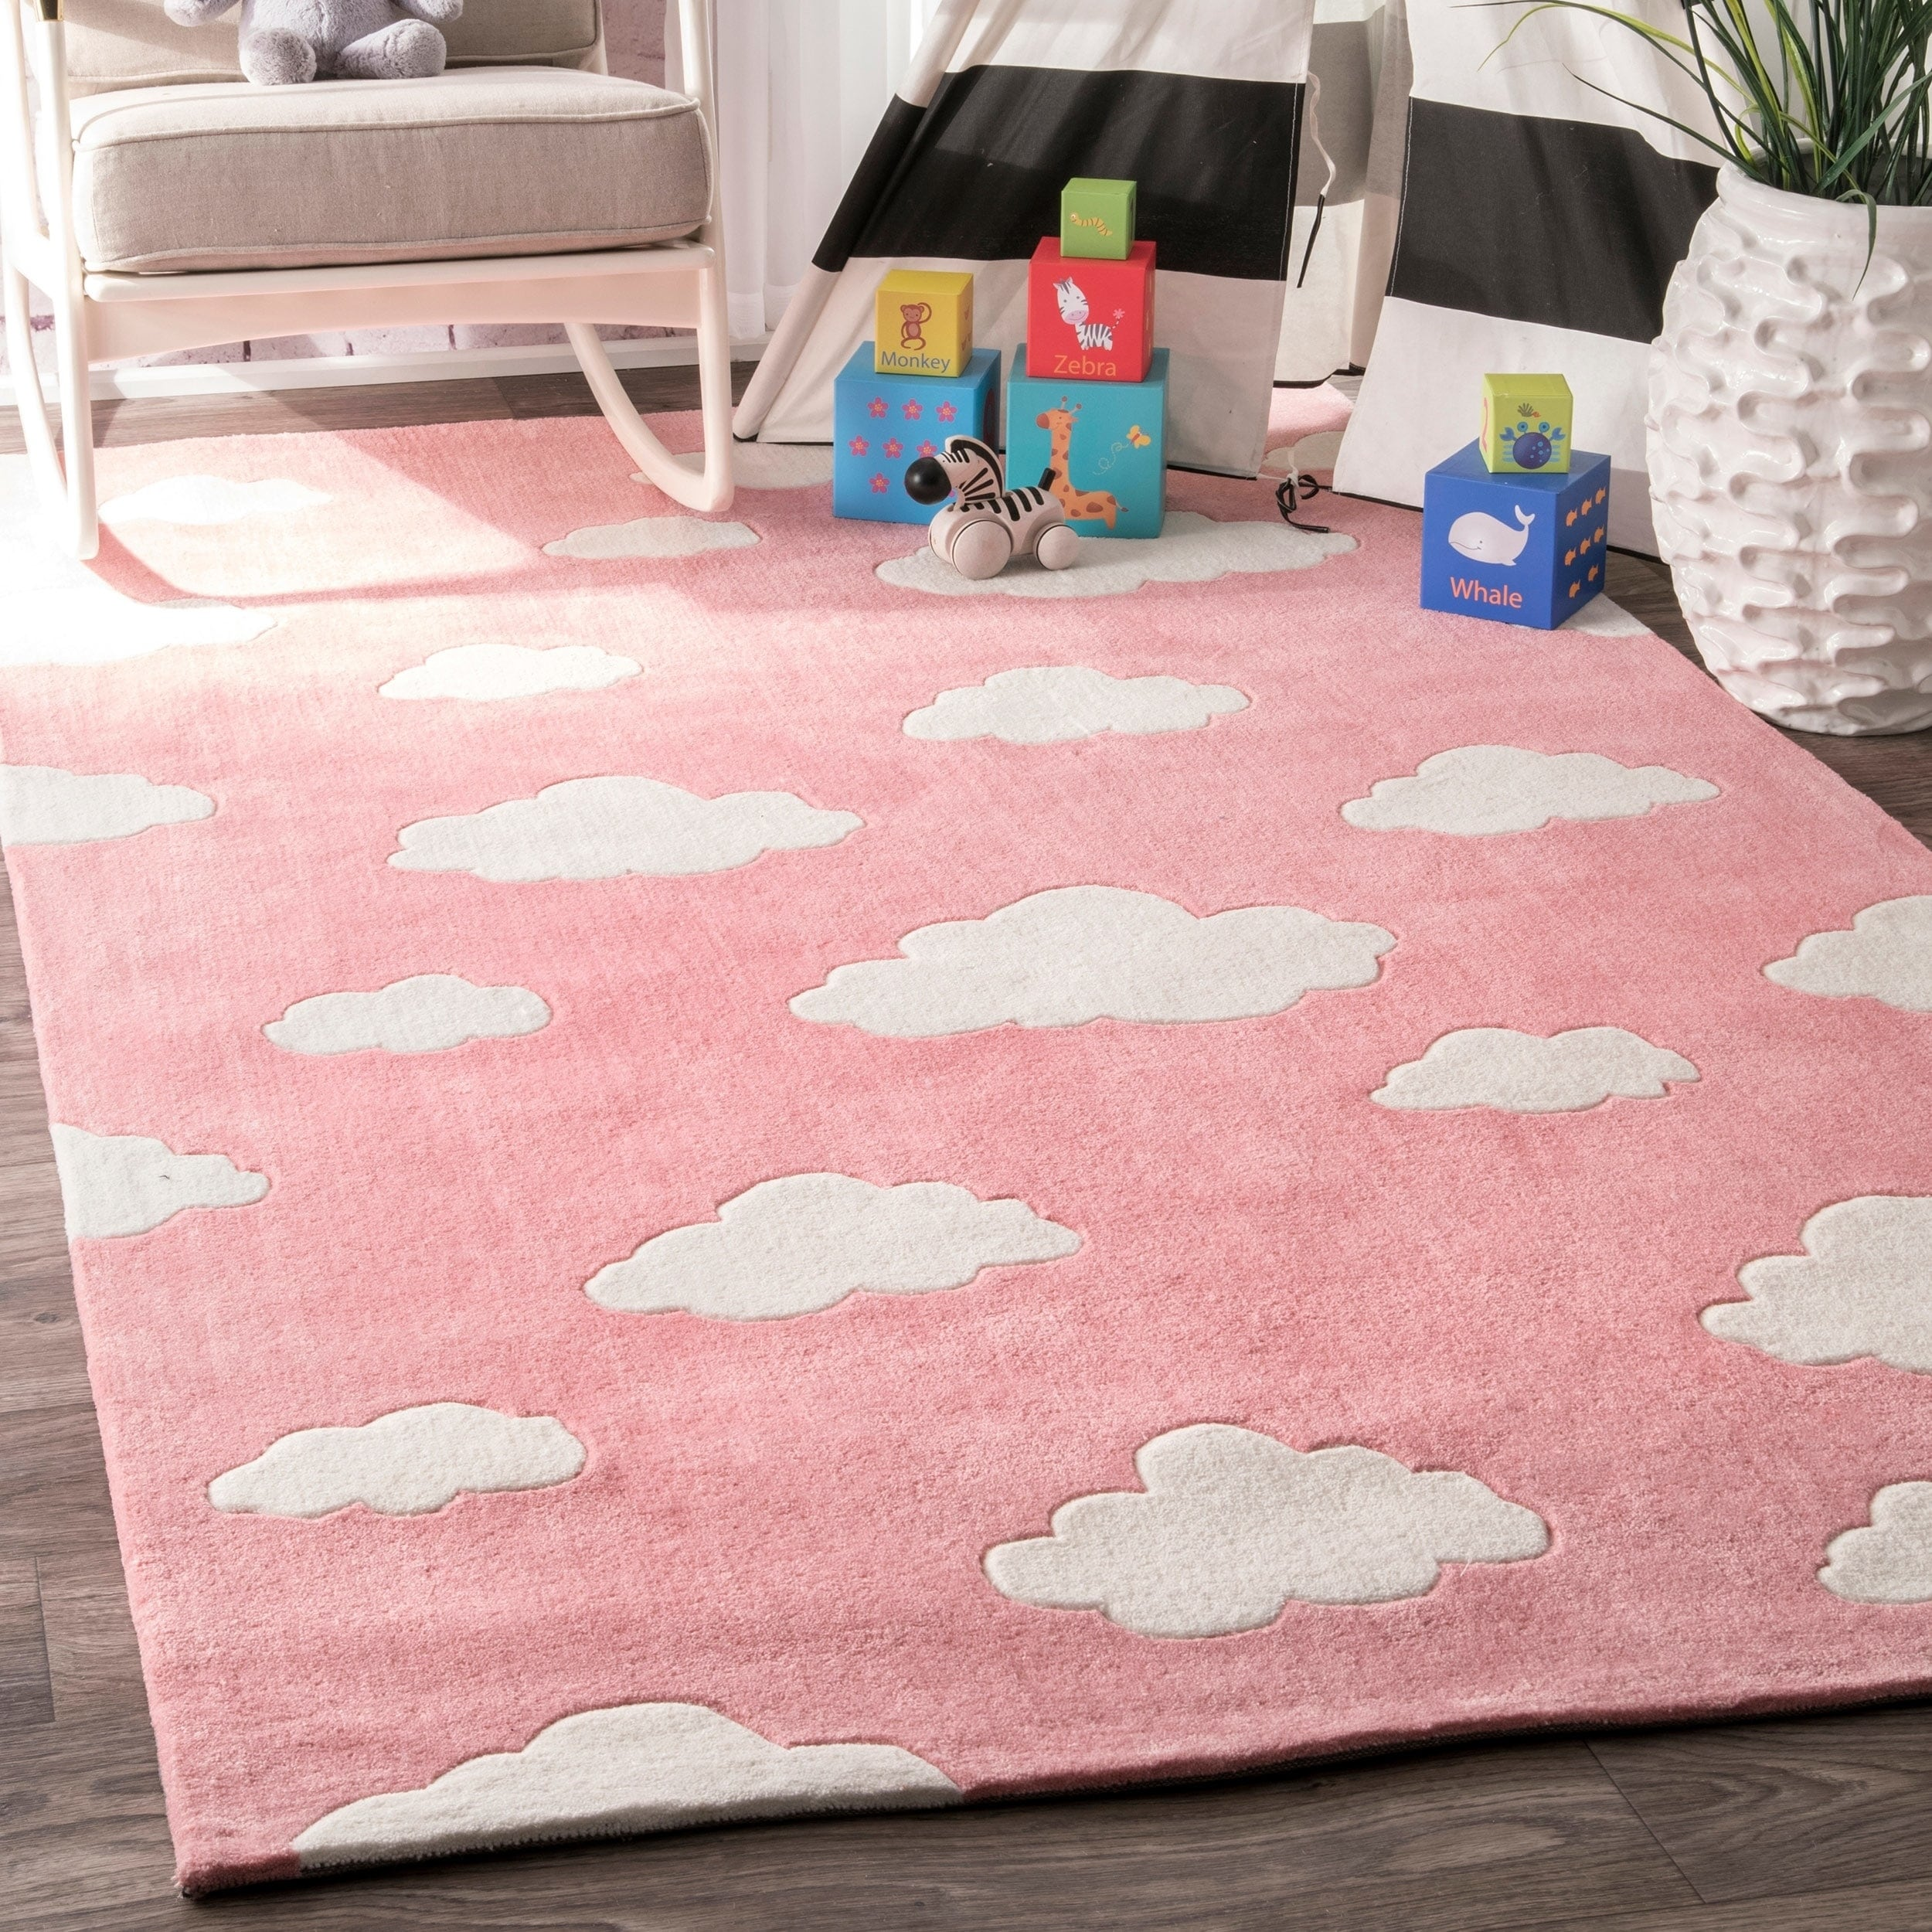 Nuloom Handmade Modern Clouds Kids Pink Blue Rug 7 6 X 9 On Free Shipping Today 10339757